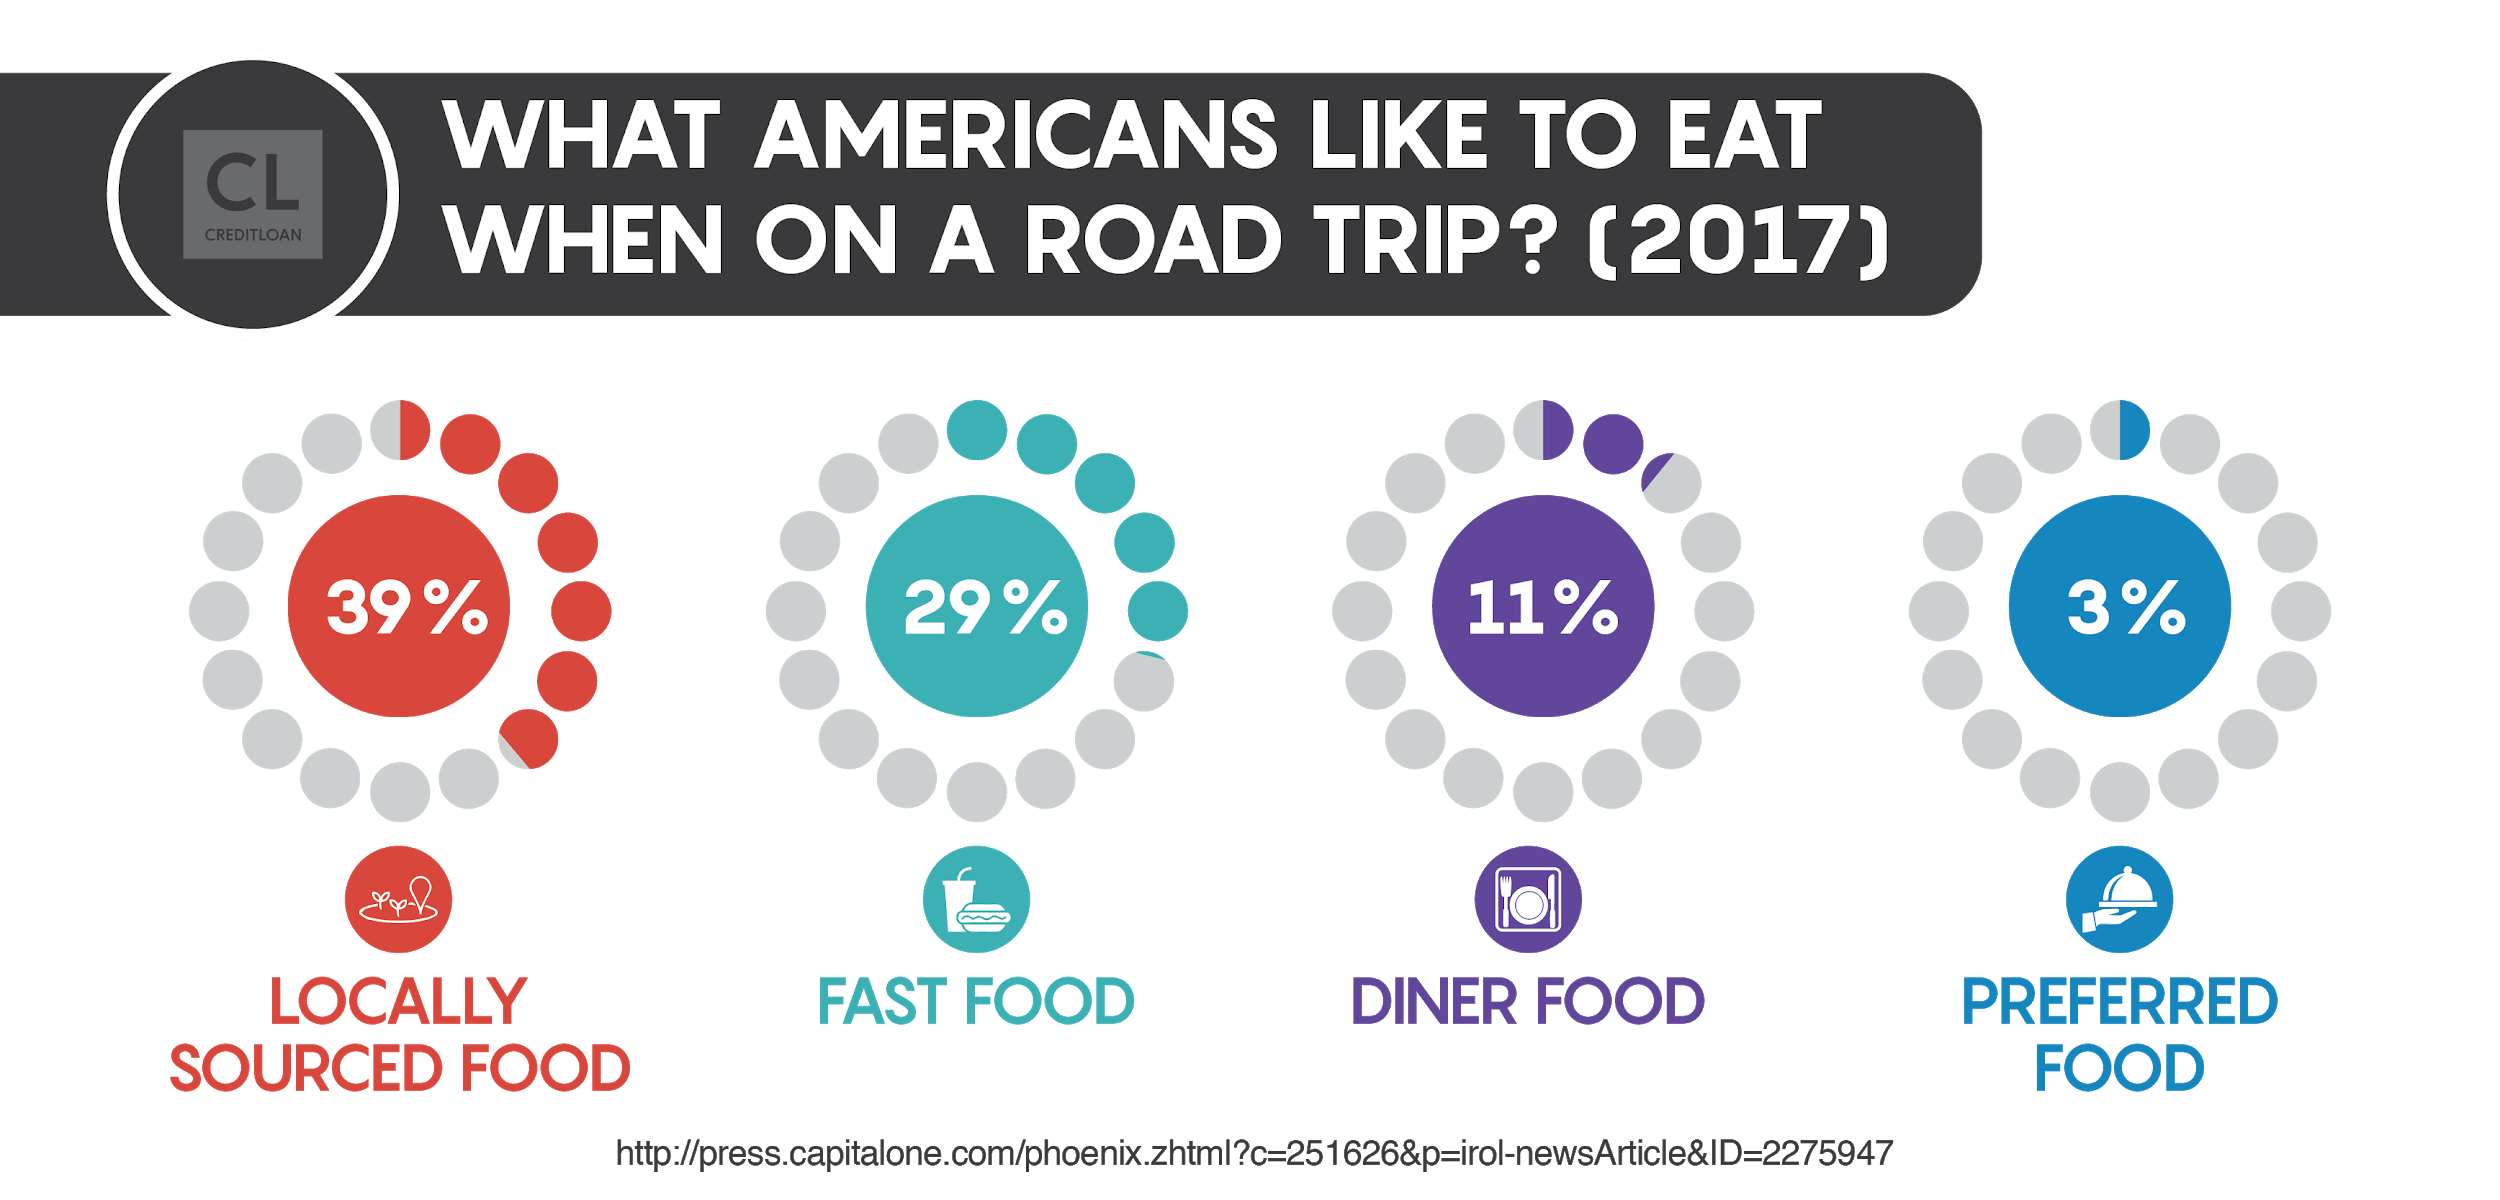 Survey: What Americans Like to Eat When On A Road Trip?